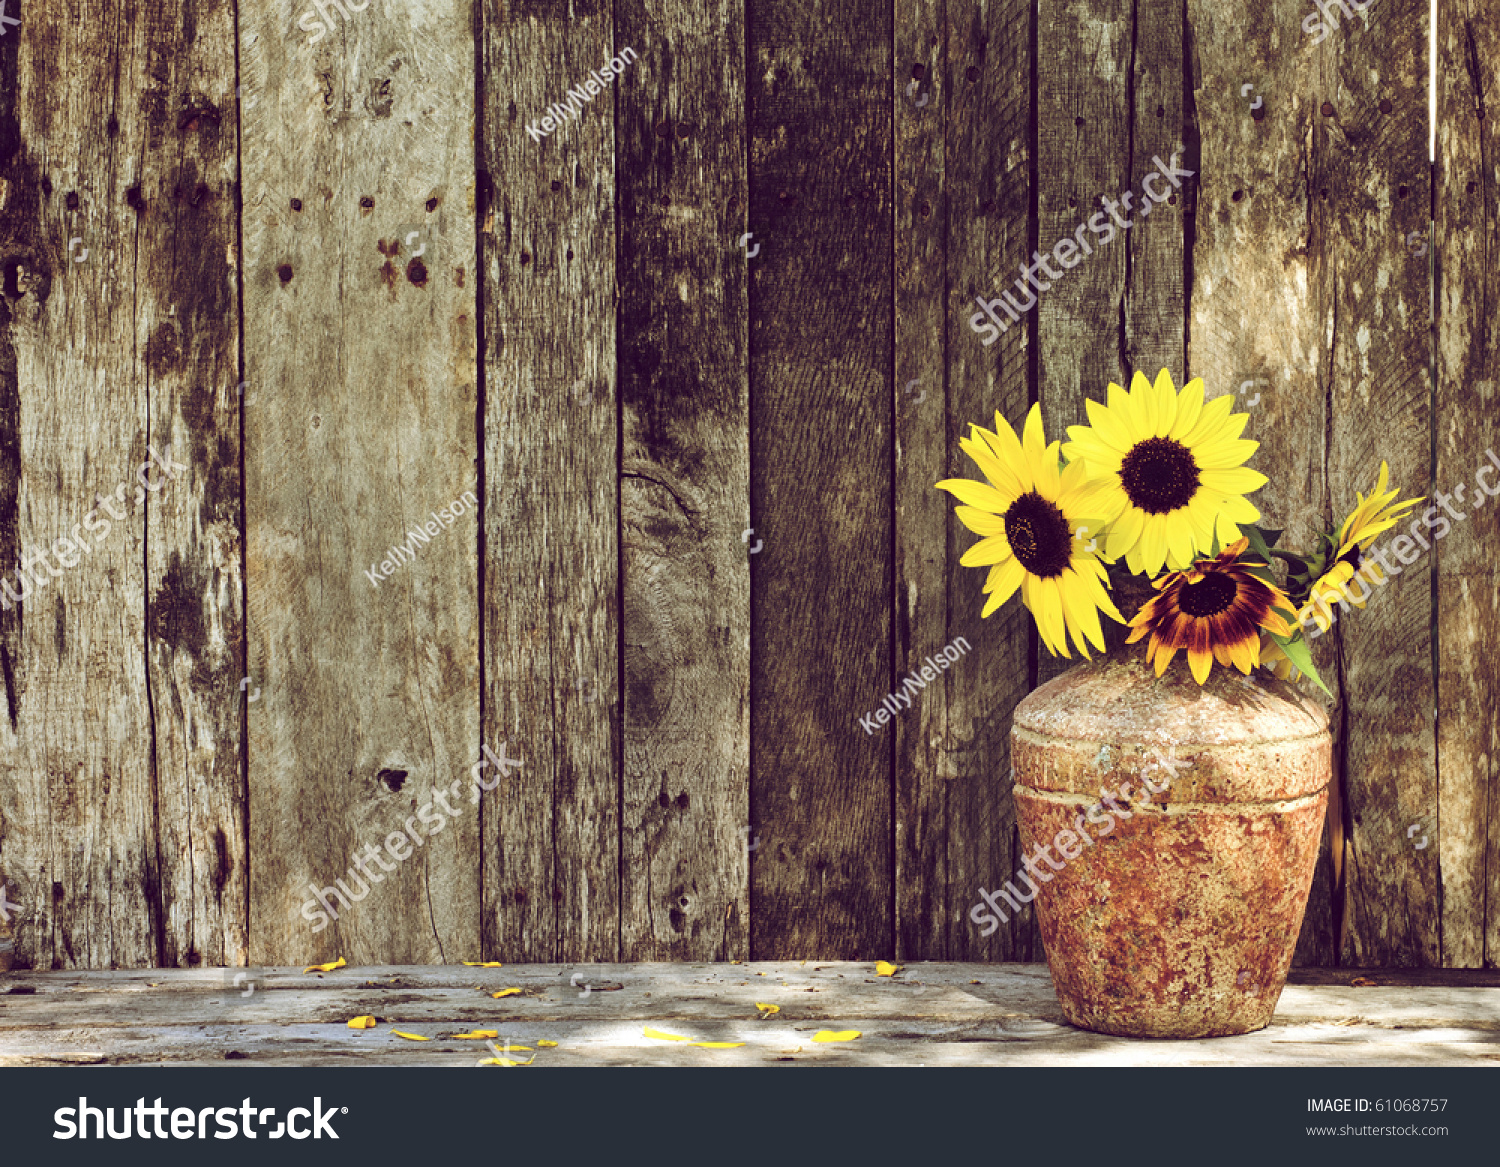 Sunflowers In A Vase On A Rustic Grunge Background With